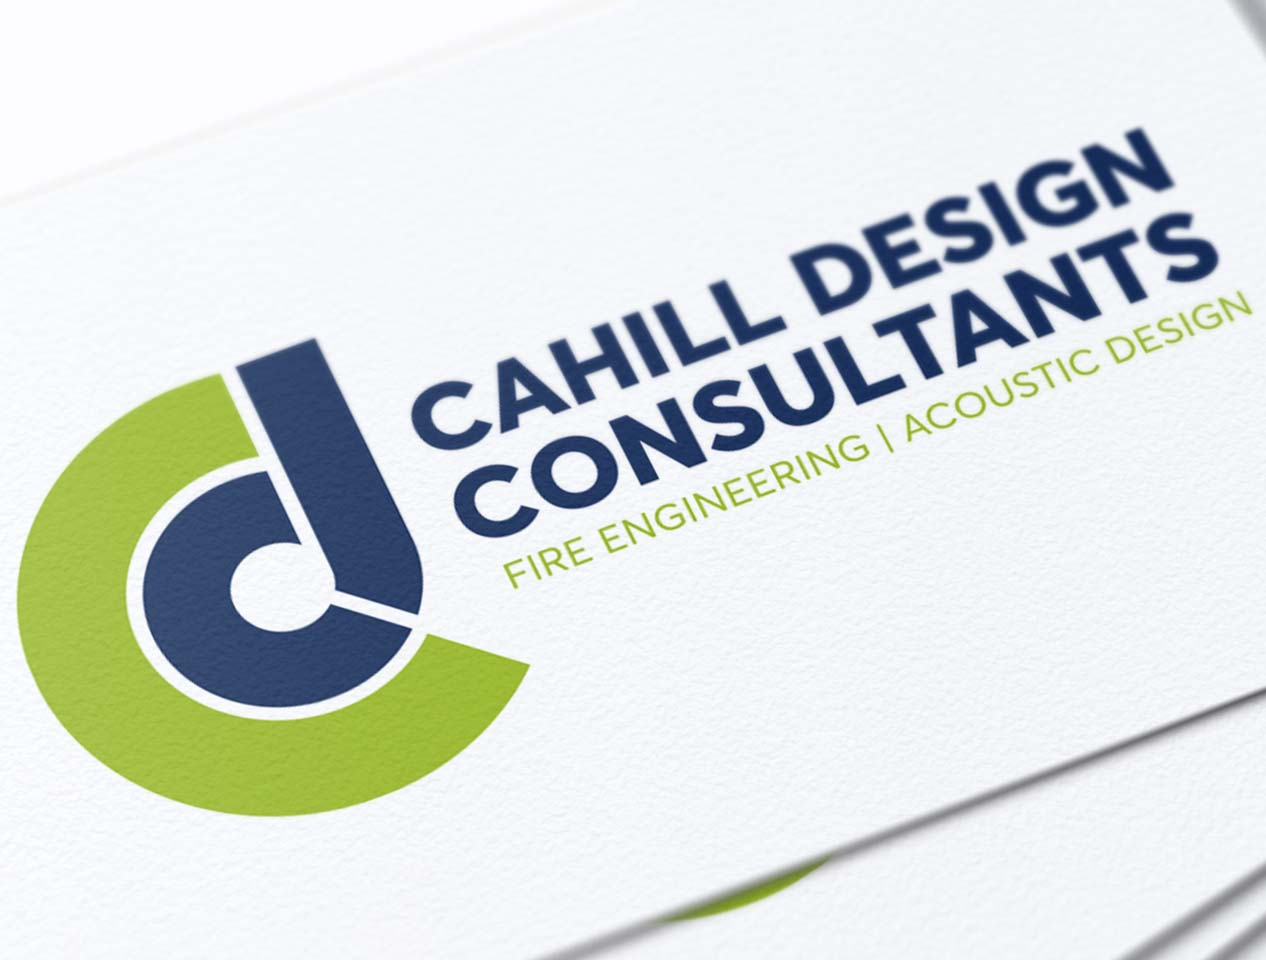 Image showing a close up of a logo on a business card